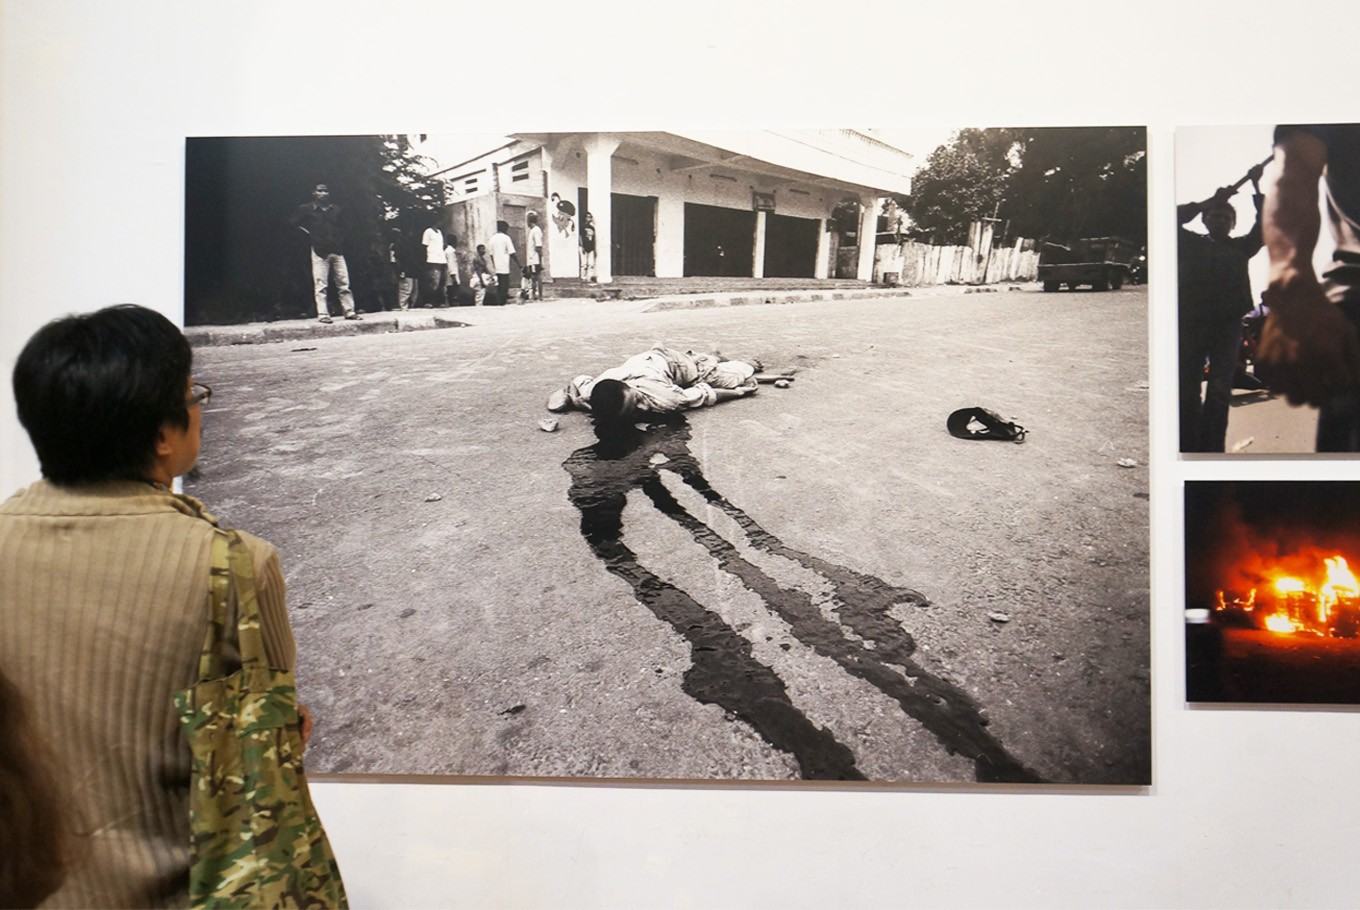 A photograph by Eddy Hasby shows Bernadito Gutteres, a student of Salatiga's Satya Wacana University who supported independence in East Timor. He was shot dead in front of Santo Paulus monastery in Dili, East Timor. (JP/Masajeng Rahmiasri)